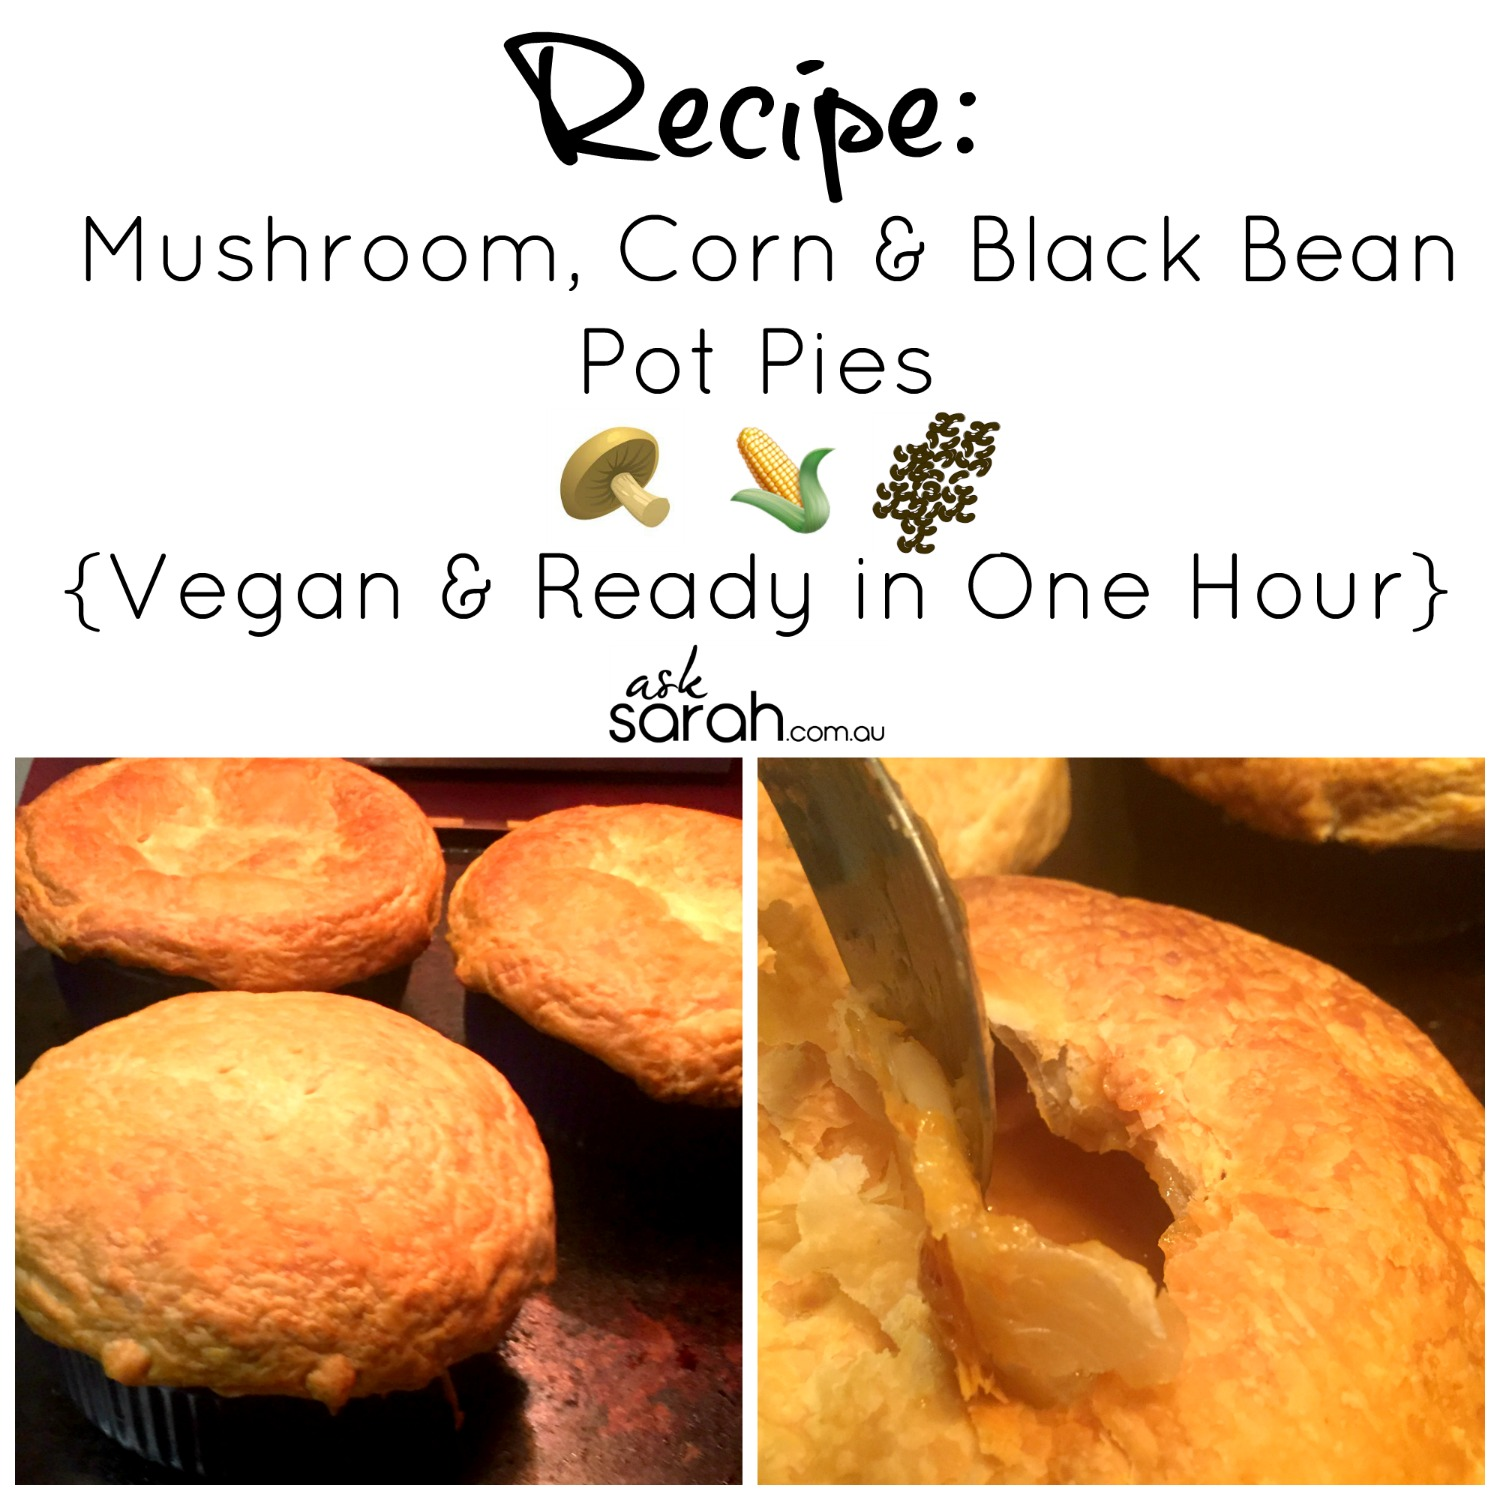 Recipe: Mushroom, Corn & Black Bean Pot Pies {Vegan & Ready in One Hour}